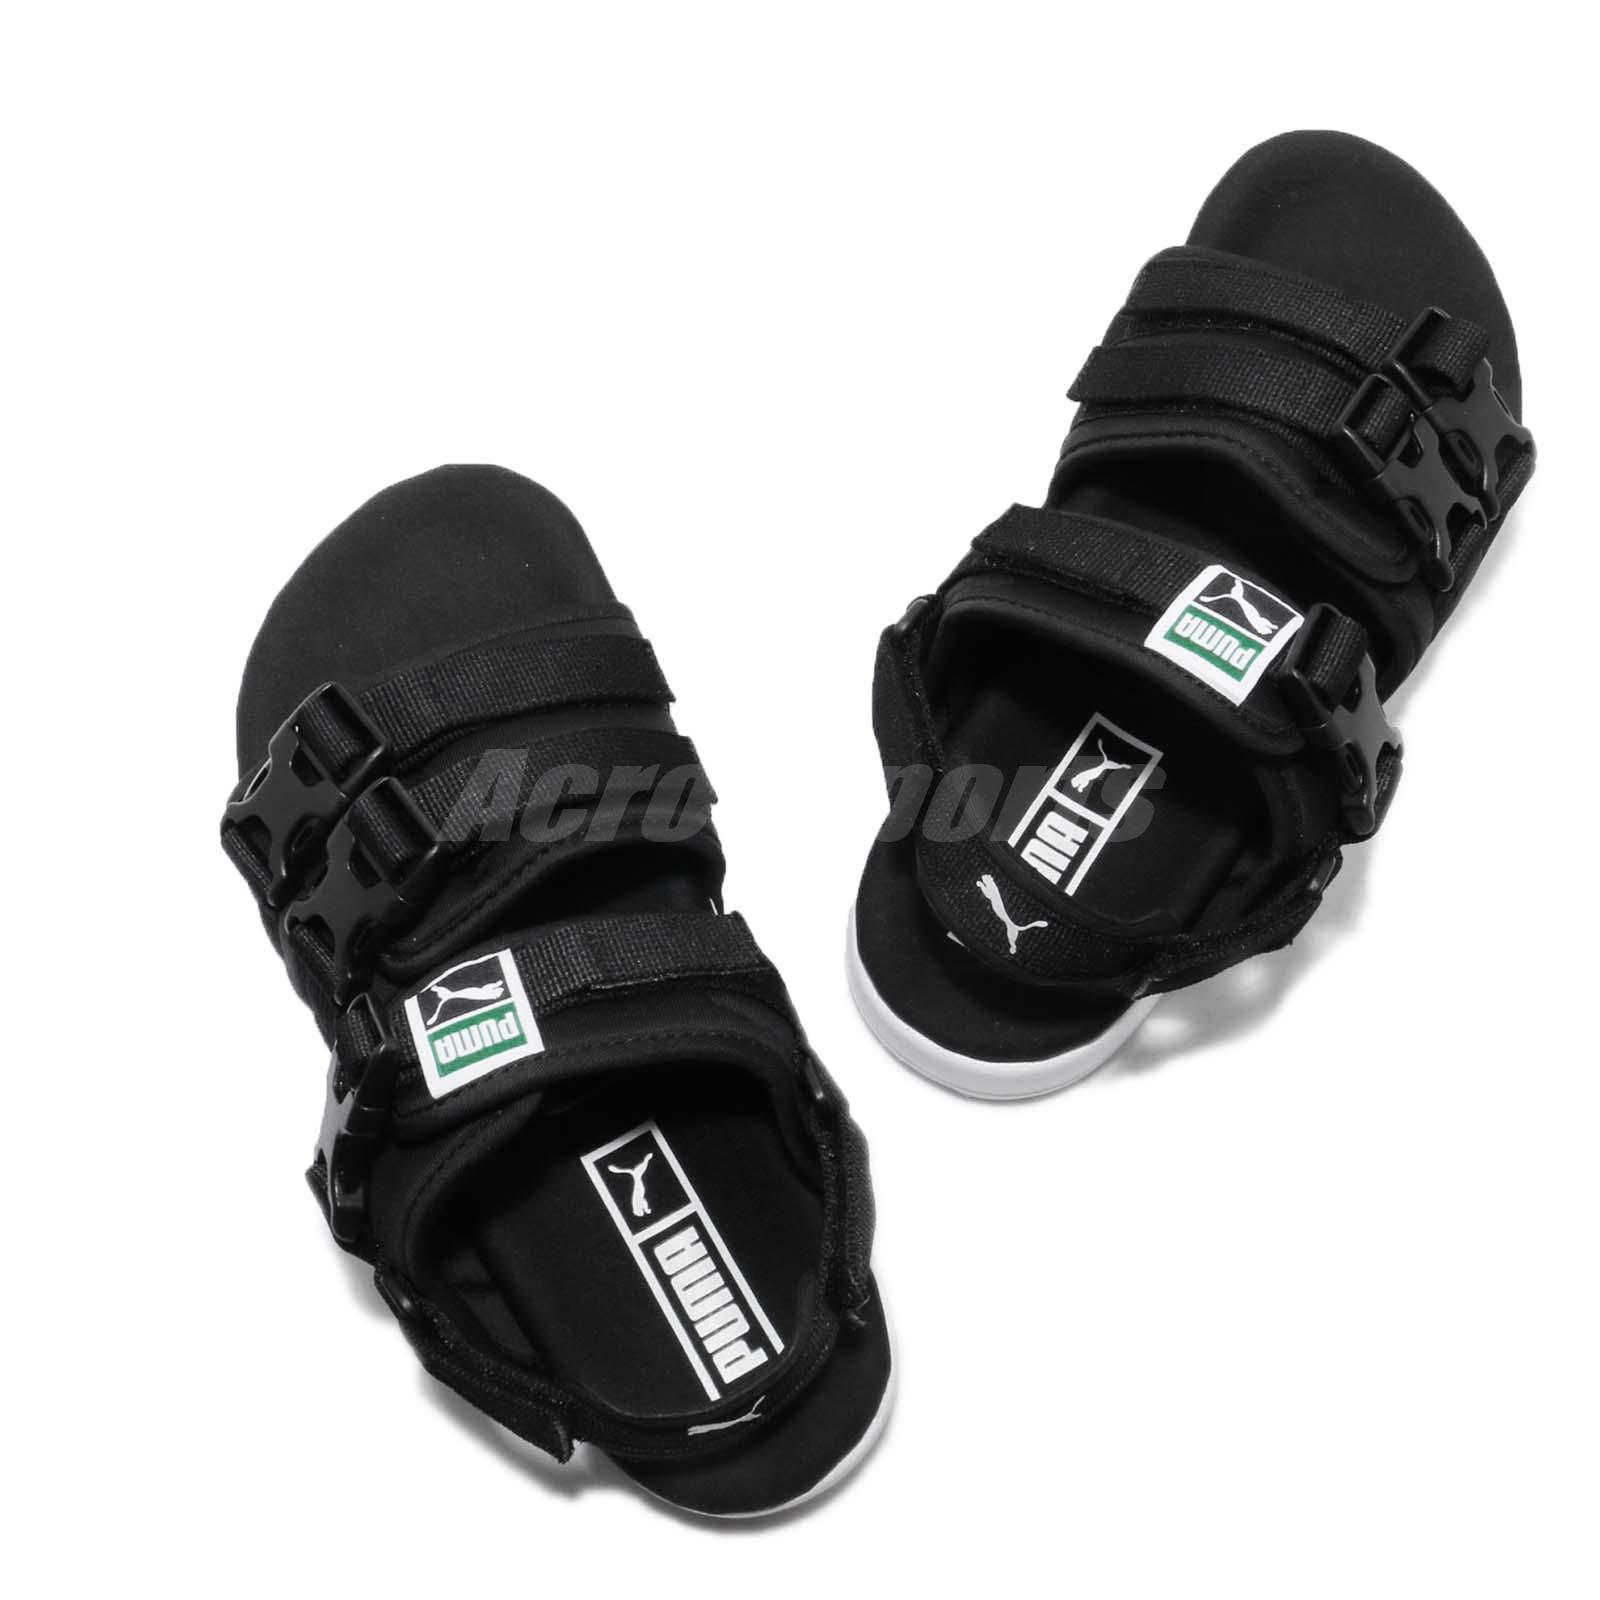 9dd48cddc301 Puma Leadcat YLM Black White One Click Men Lifestyle Sandal Shoes ...